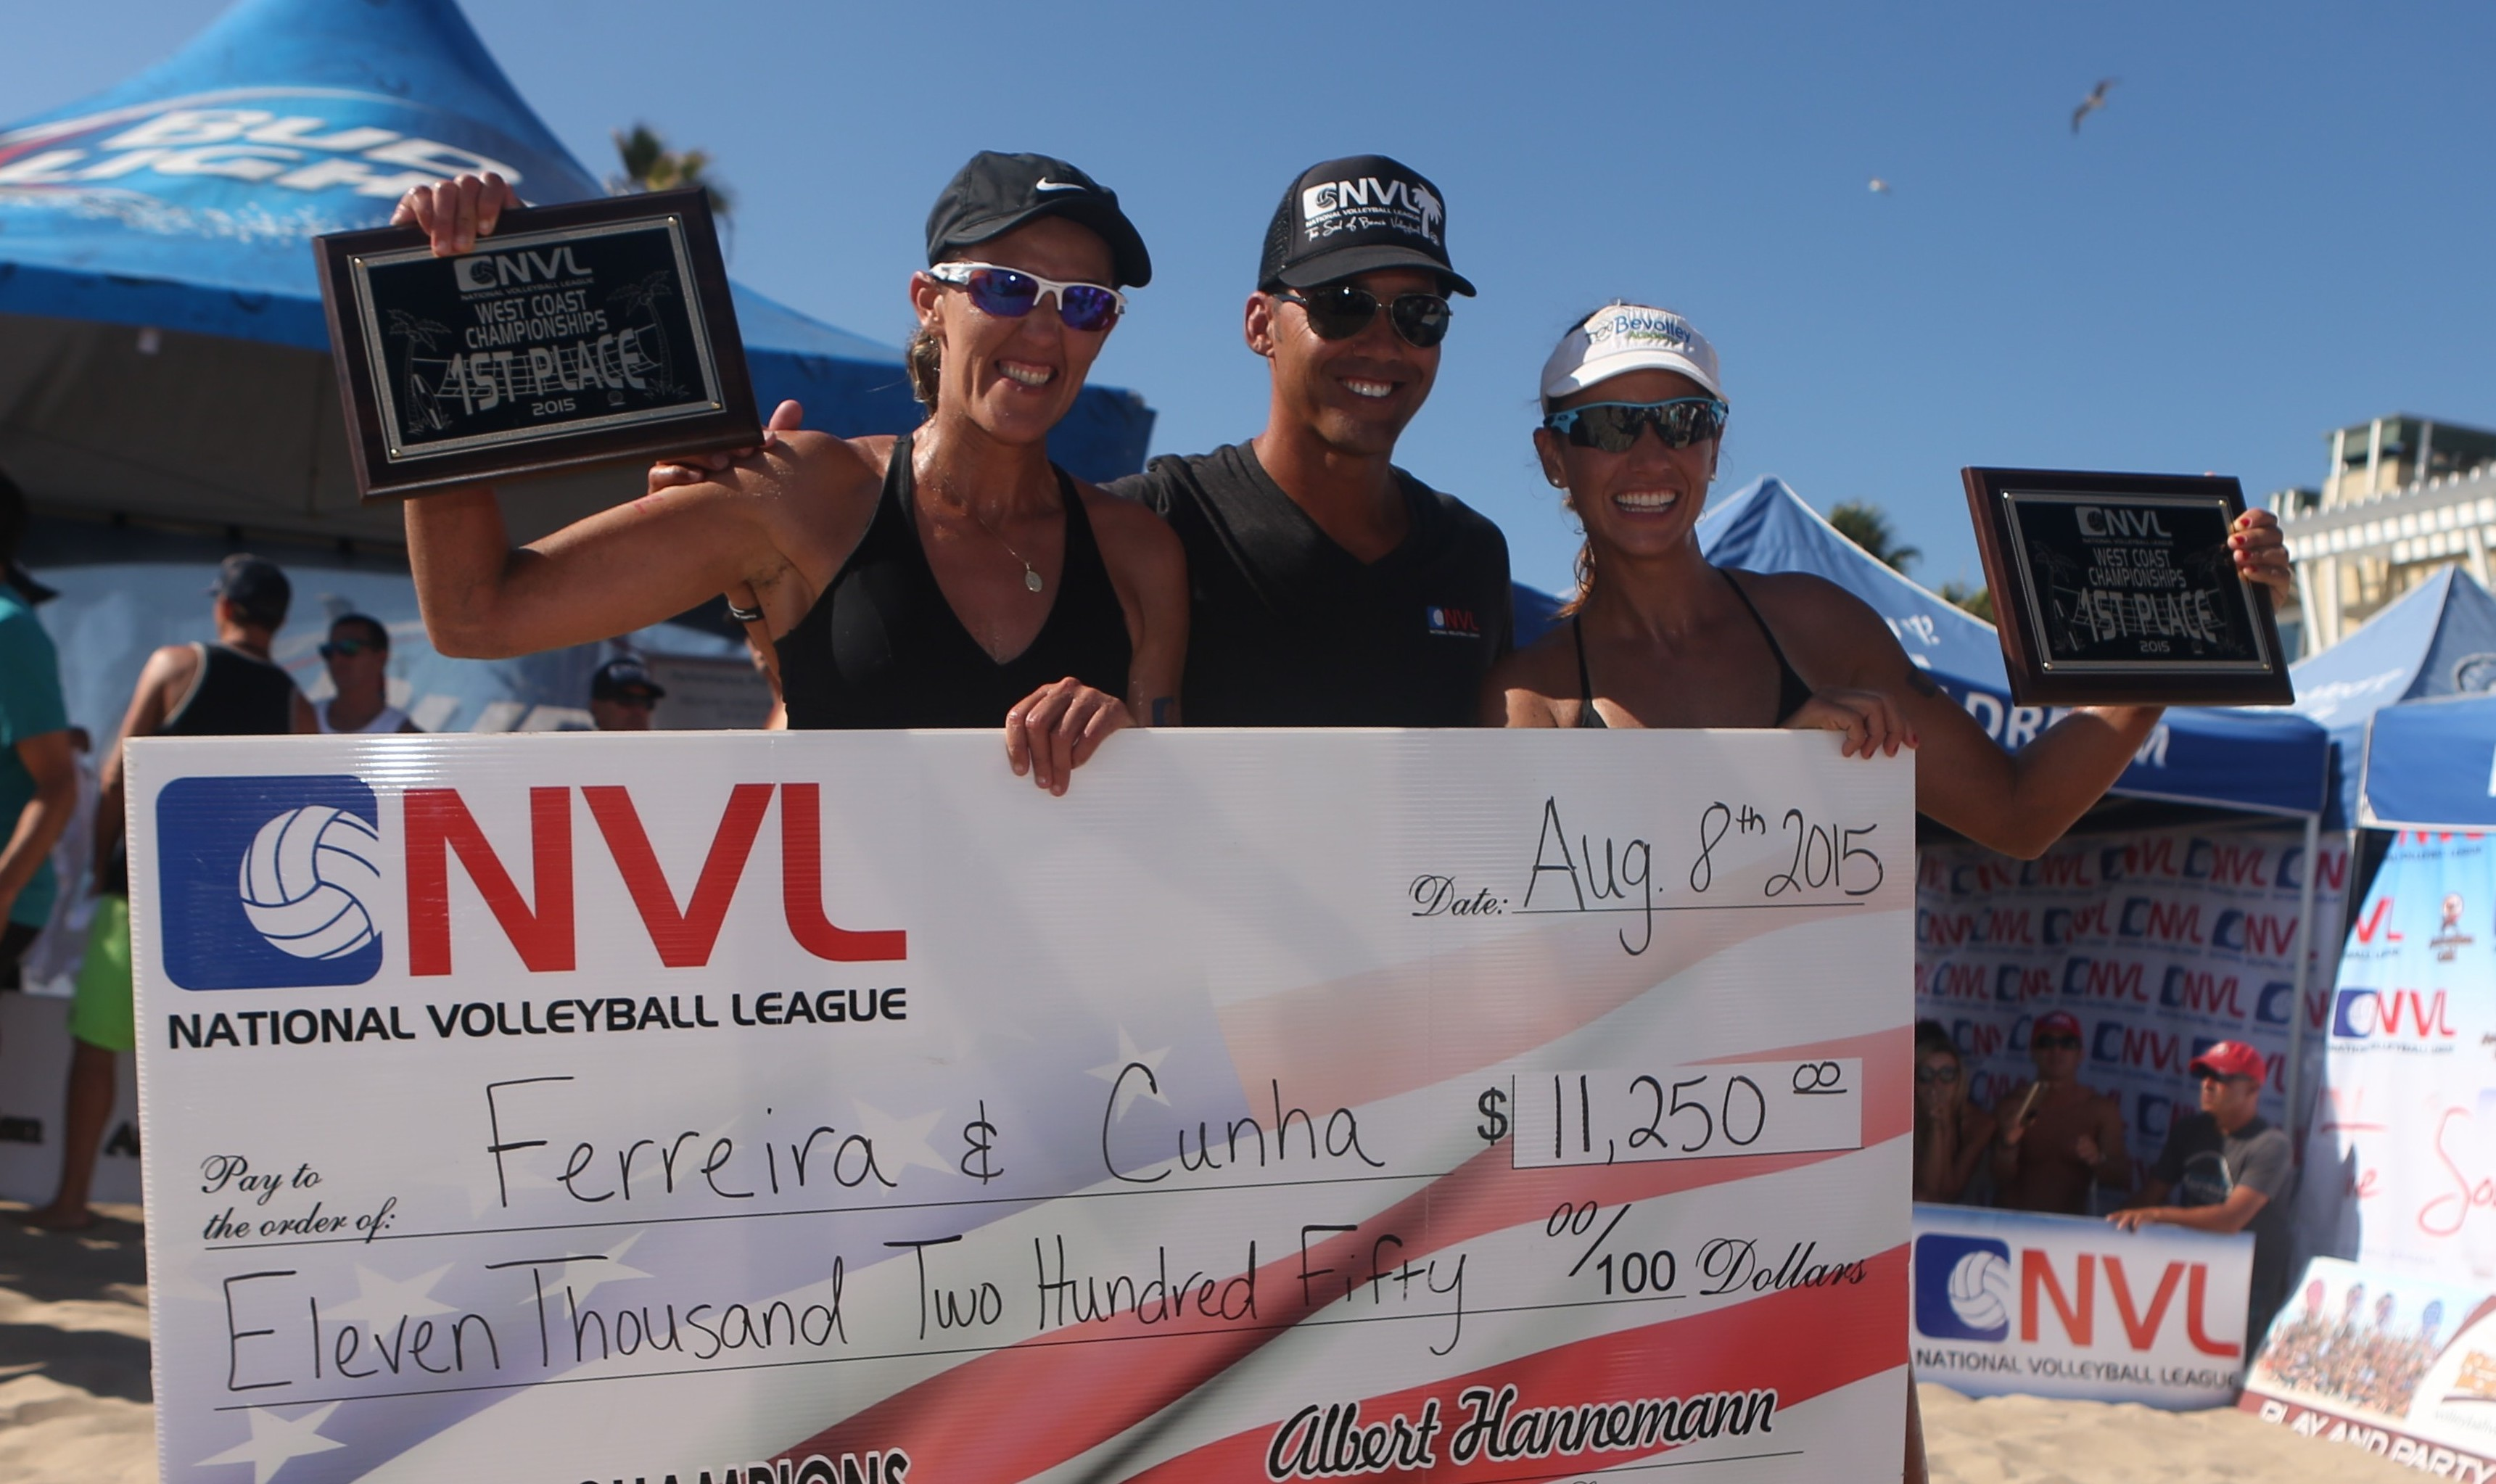 Three-Peat For Vivian Cunha & Raquel Goncalves Ferreira; Dave Palm & Eric Zaun Crowned Men's Winners At National Volleyball League West Coast Championships